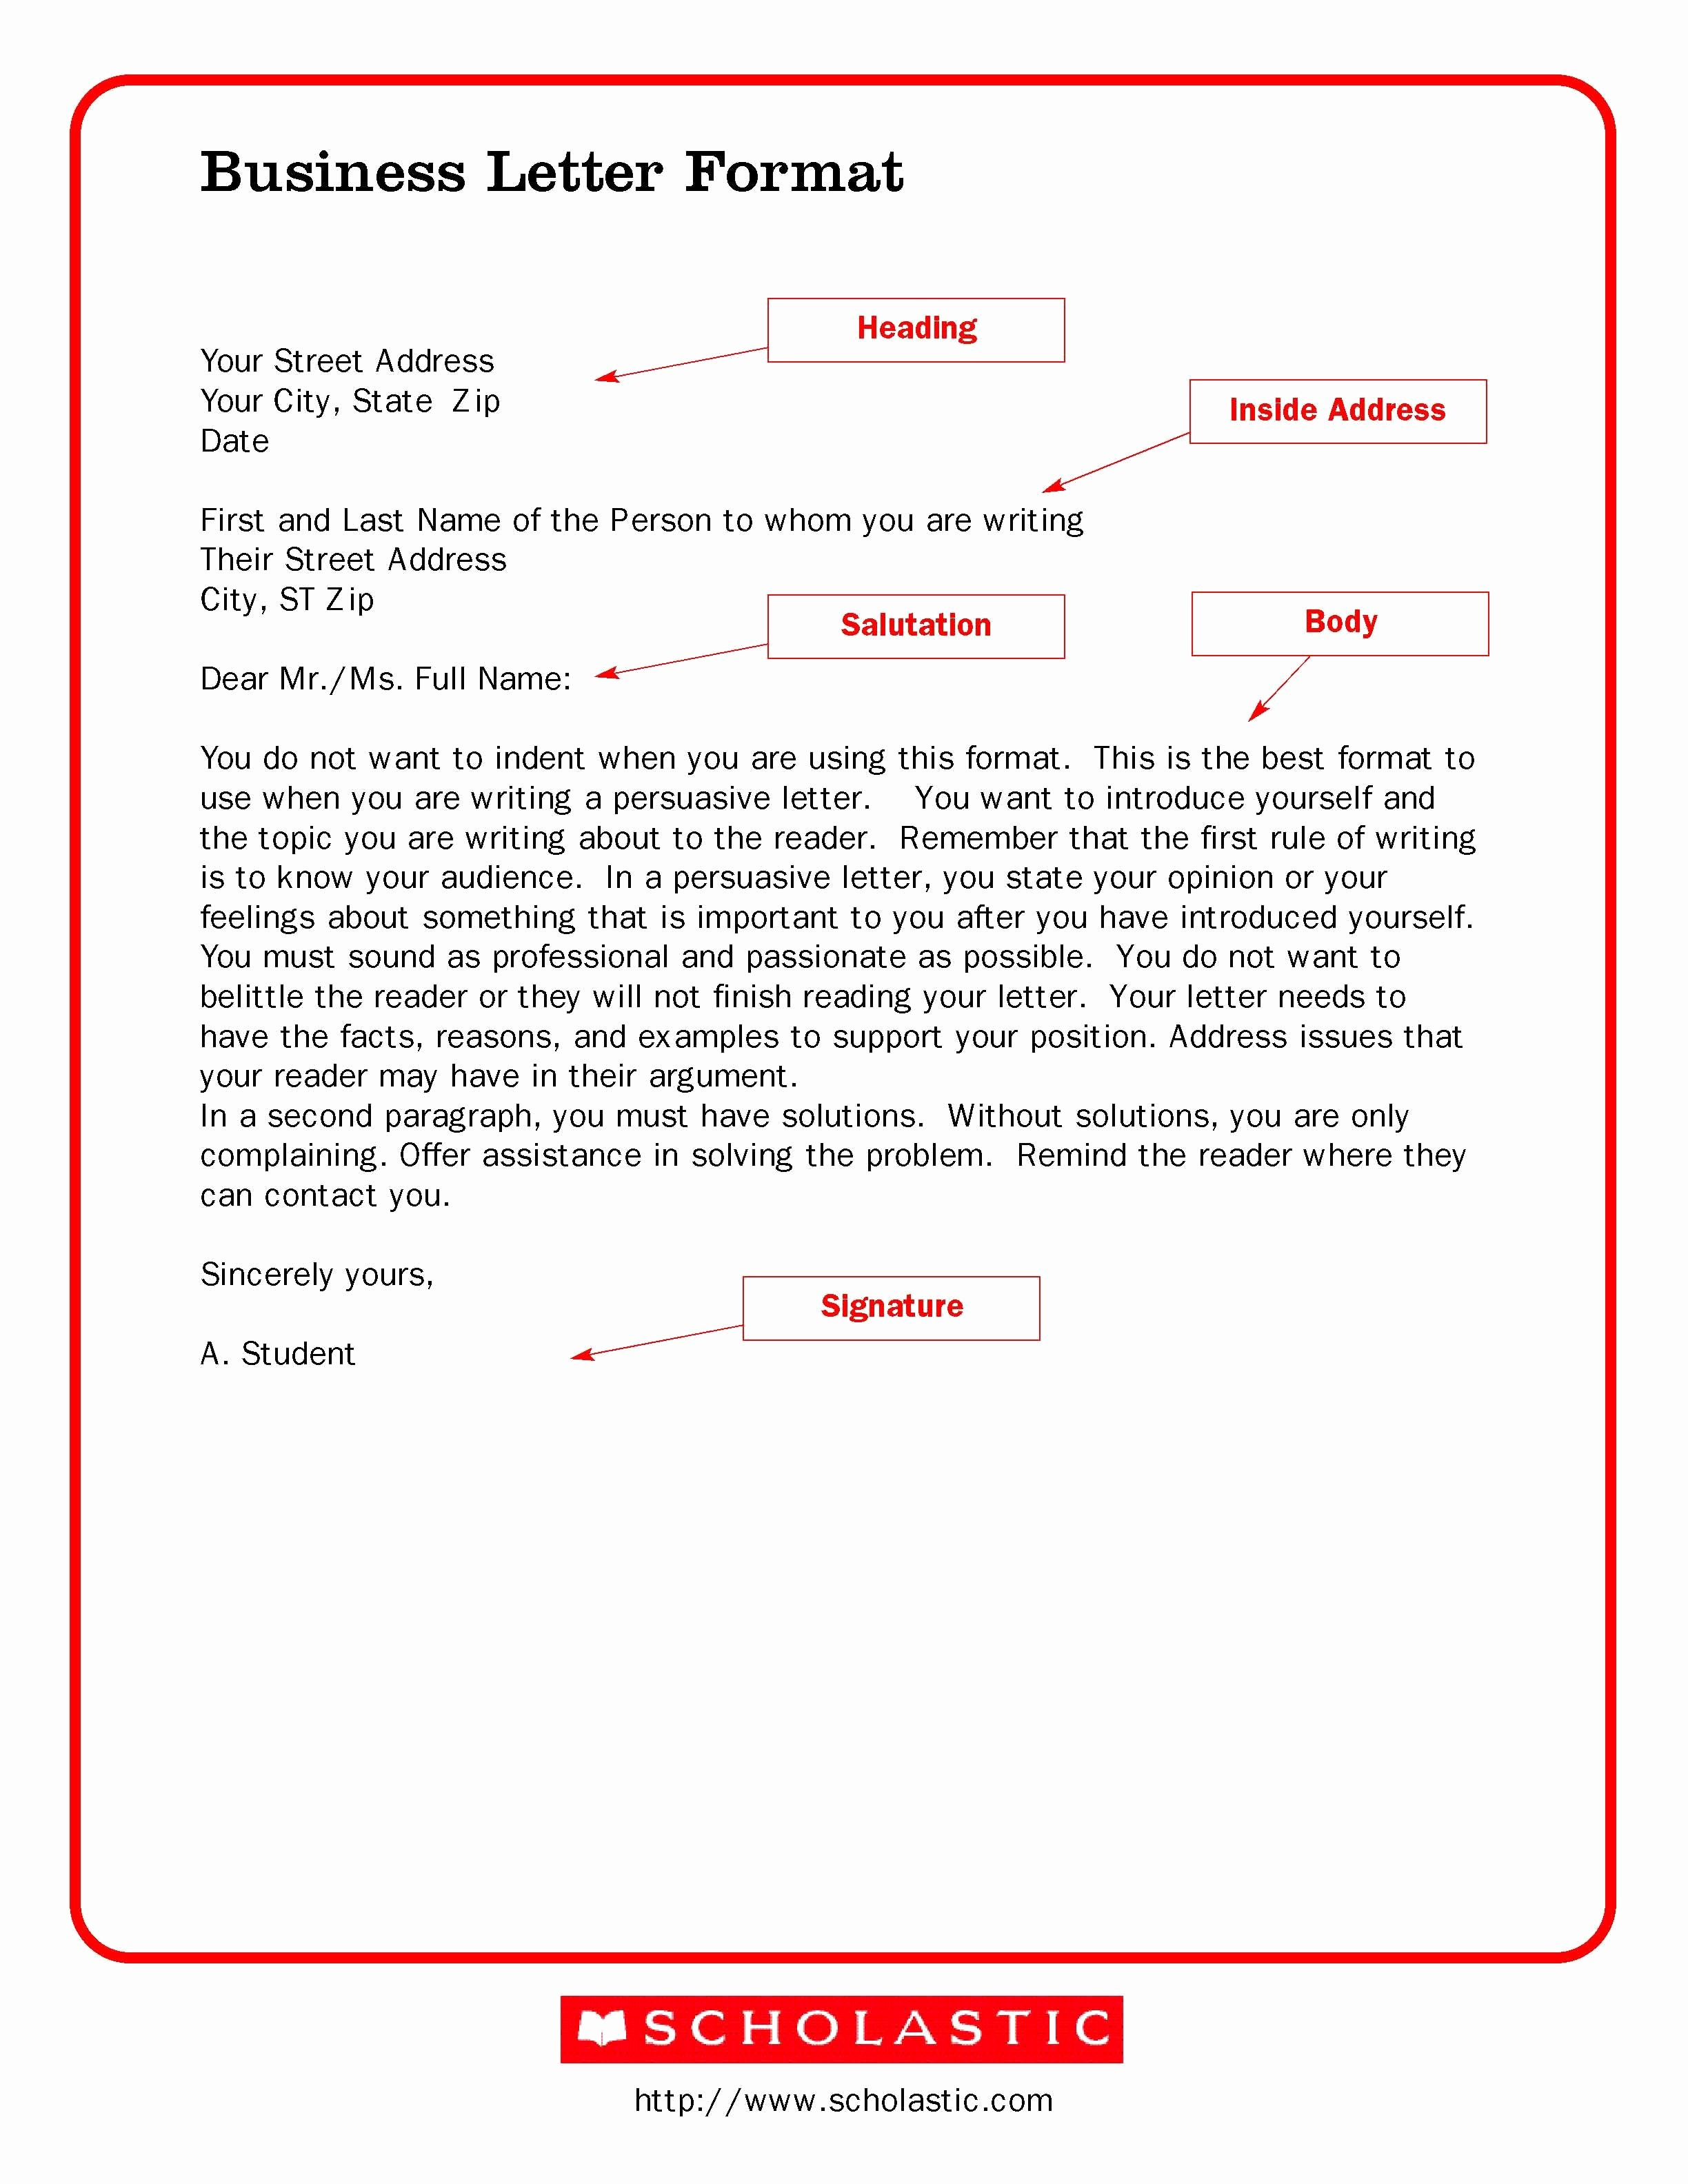 Format for A Business Letter Best Of Printable Sample Business Letter Template form